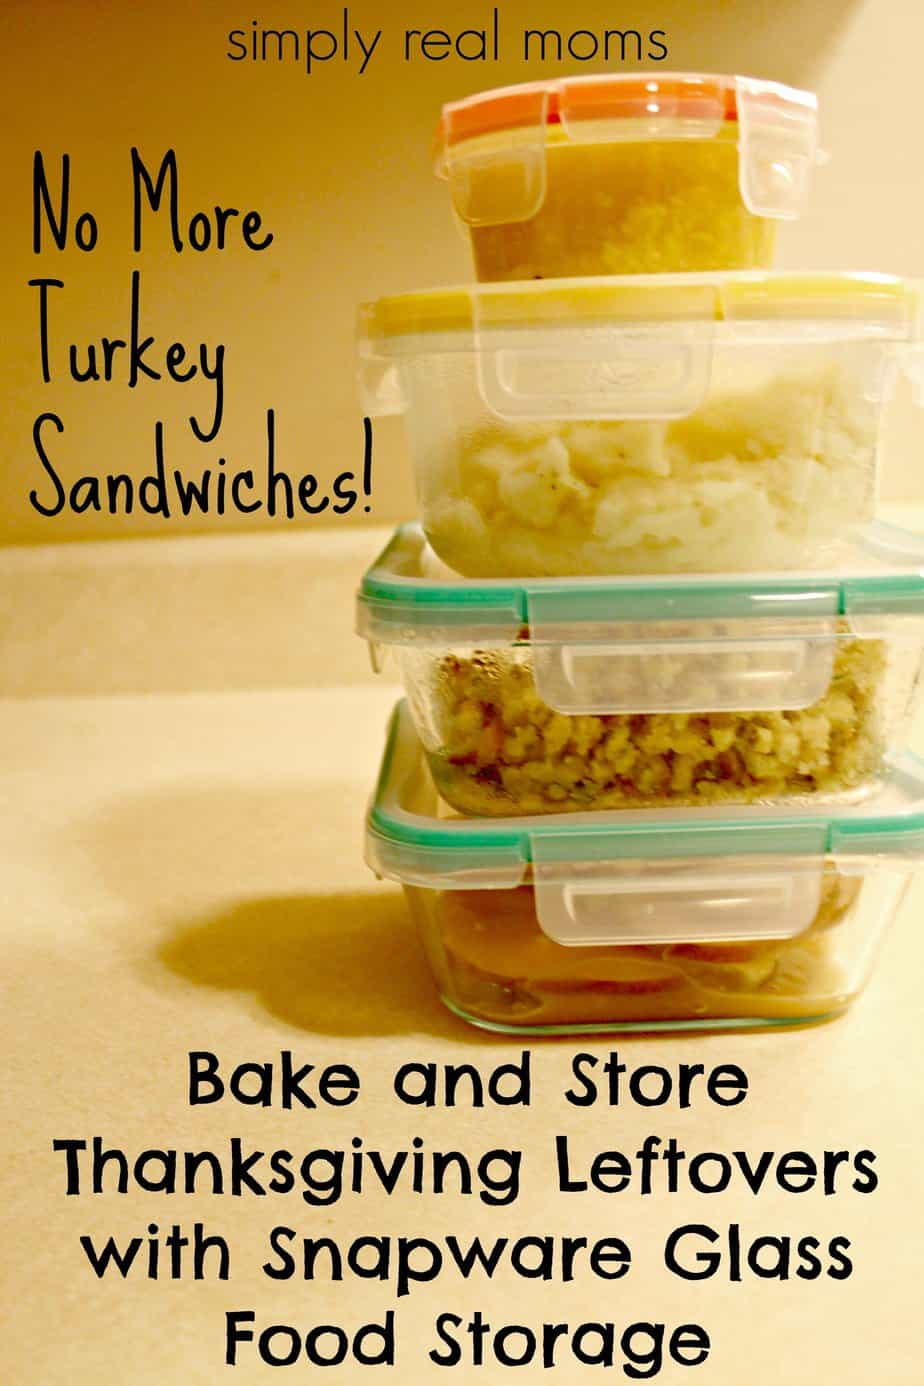 Leftover Thanksgiving Bake-No more turkey sandwiches! 4